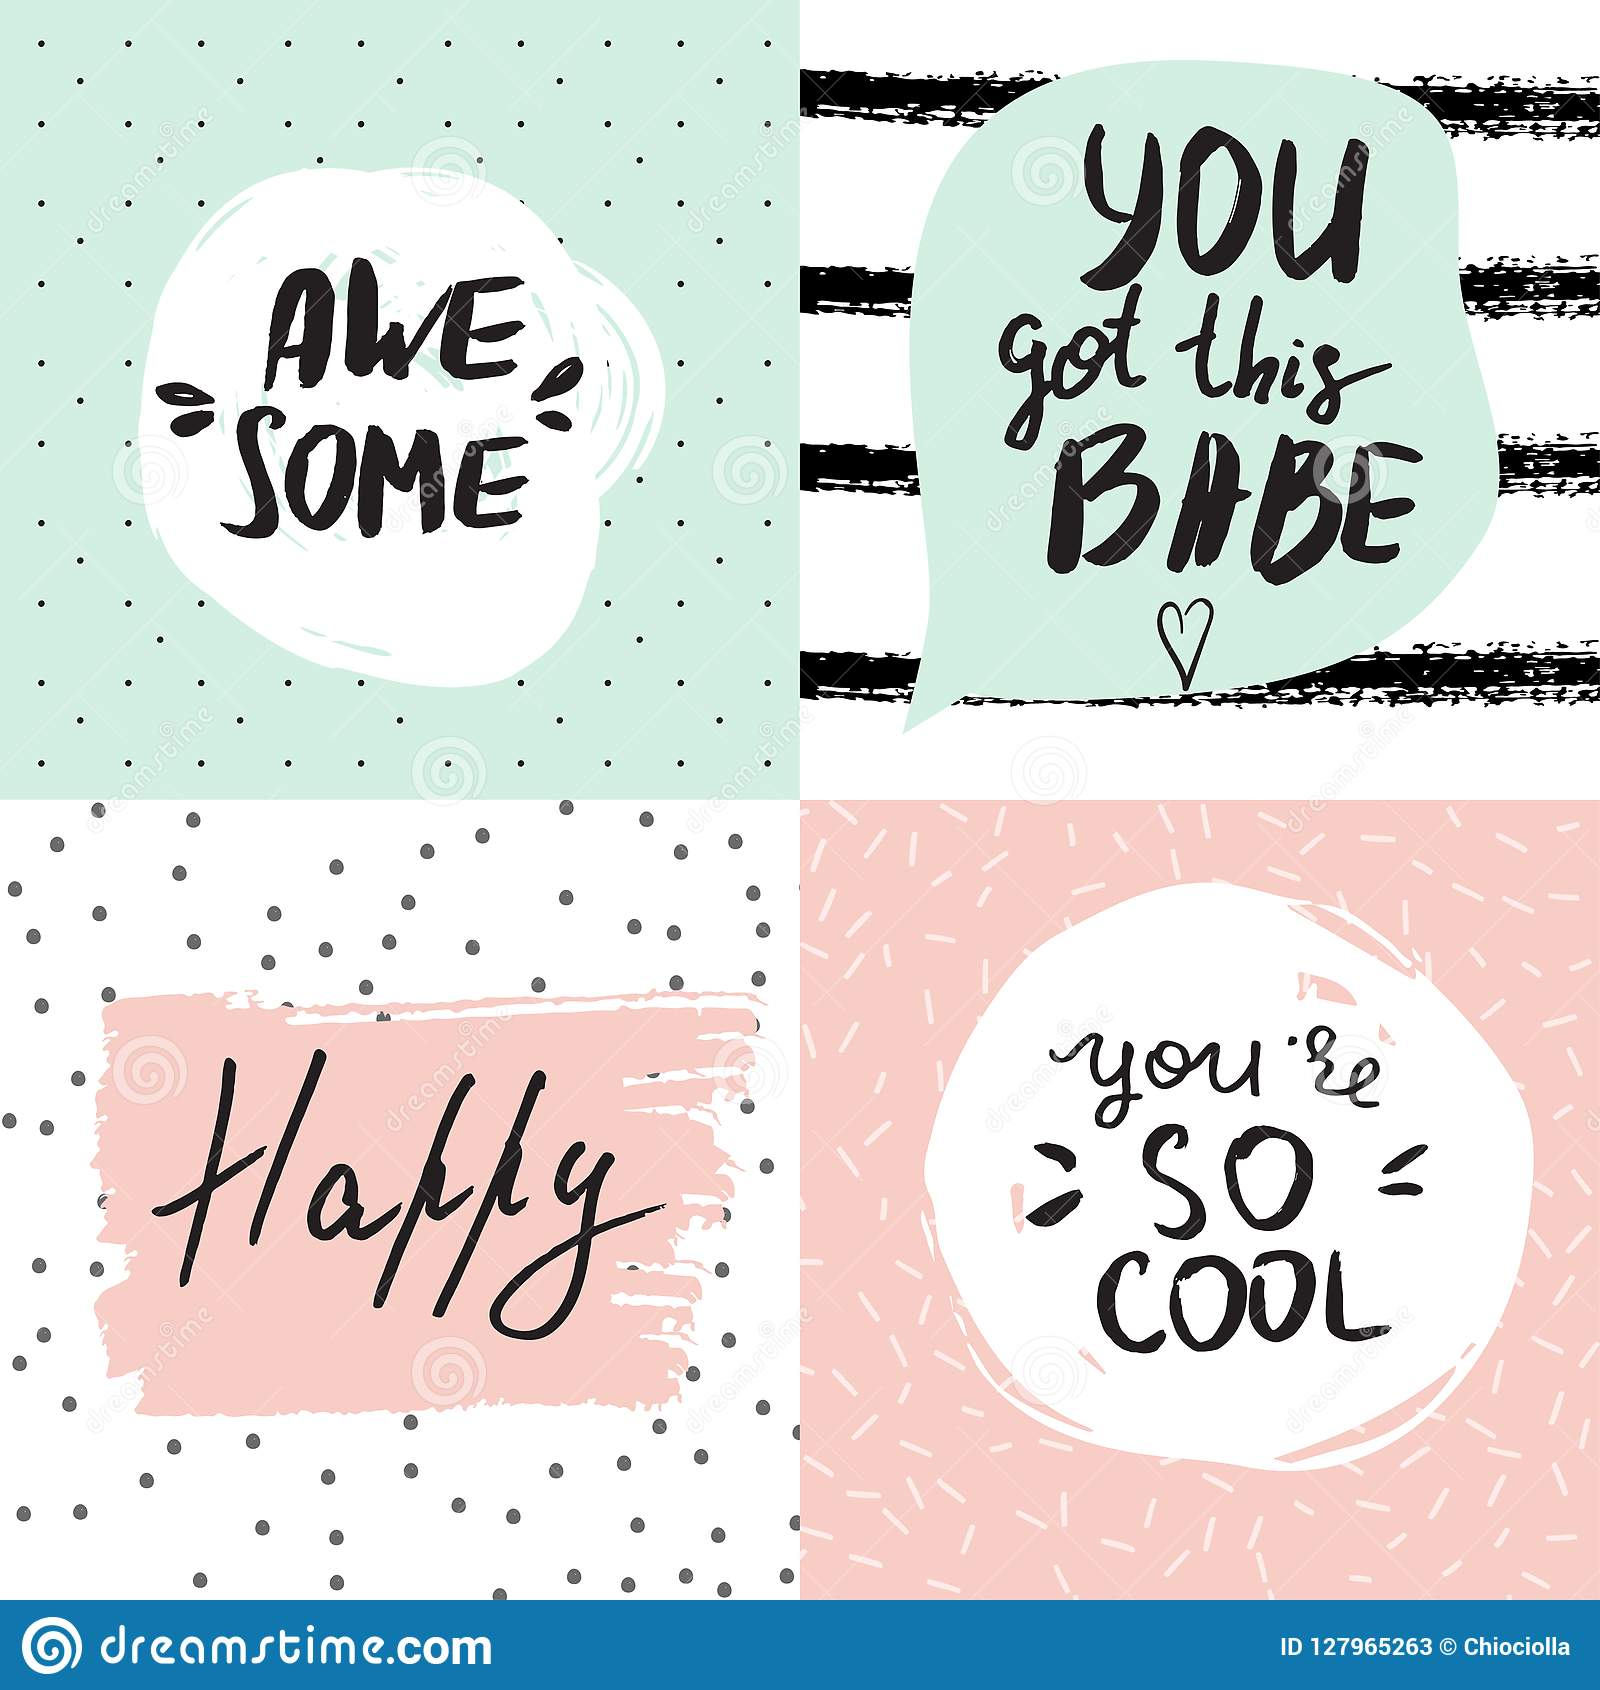 Set Of Inspirational Posters With Hand Lettered Motivational ...